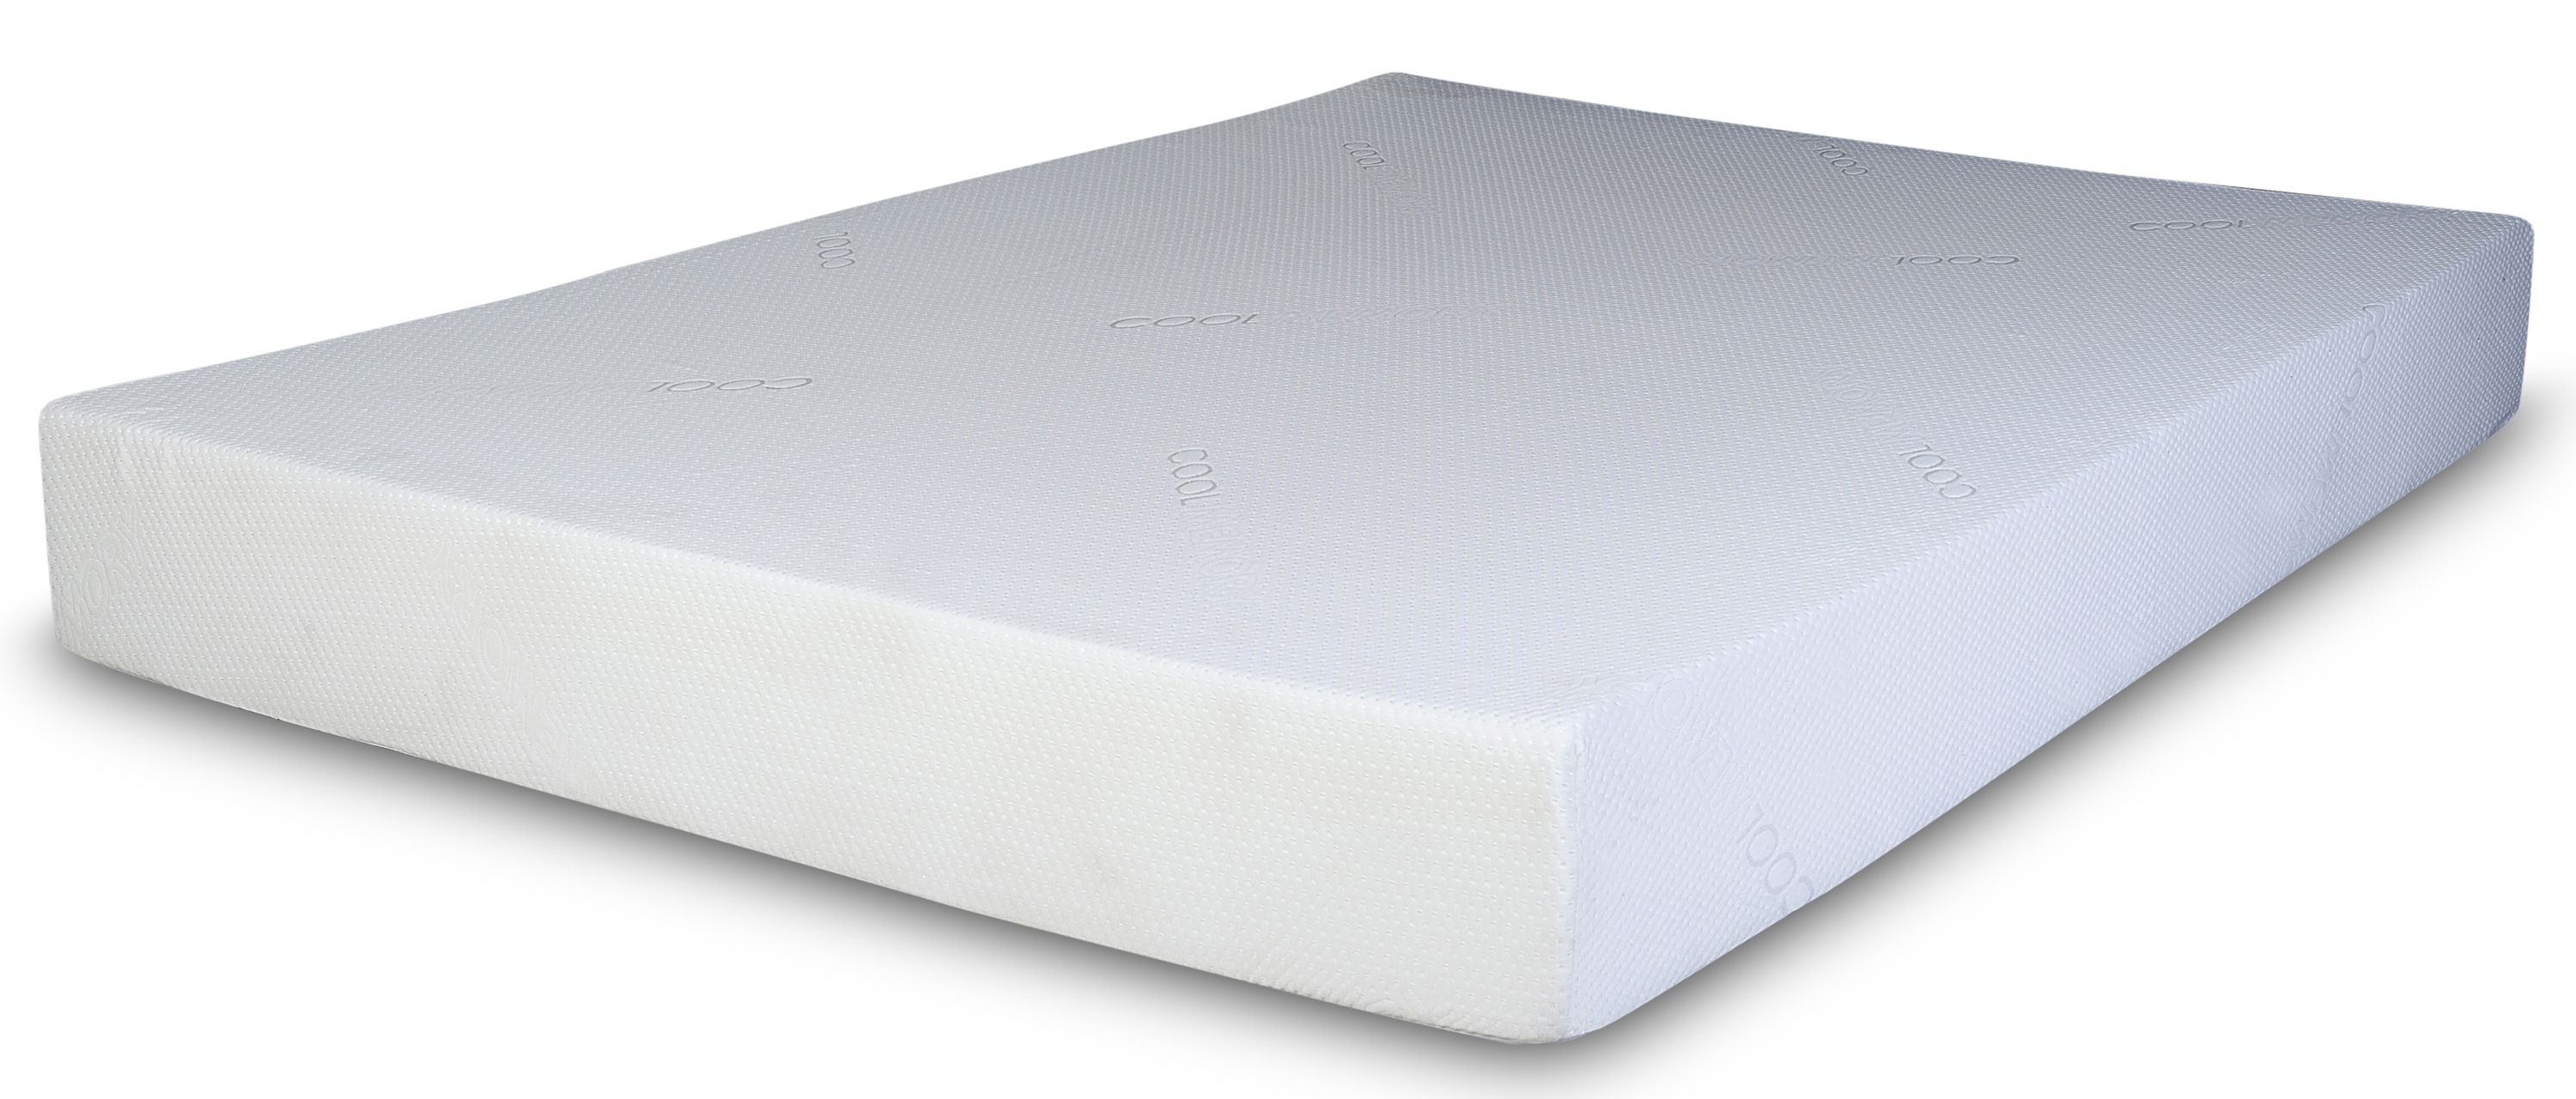 Memory foam ortho king mattress pillows Memory foam king mattress